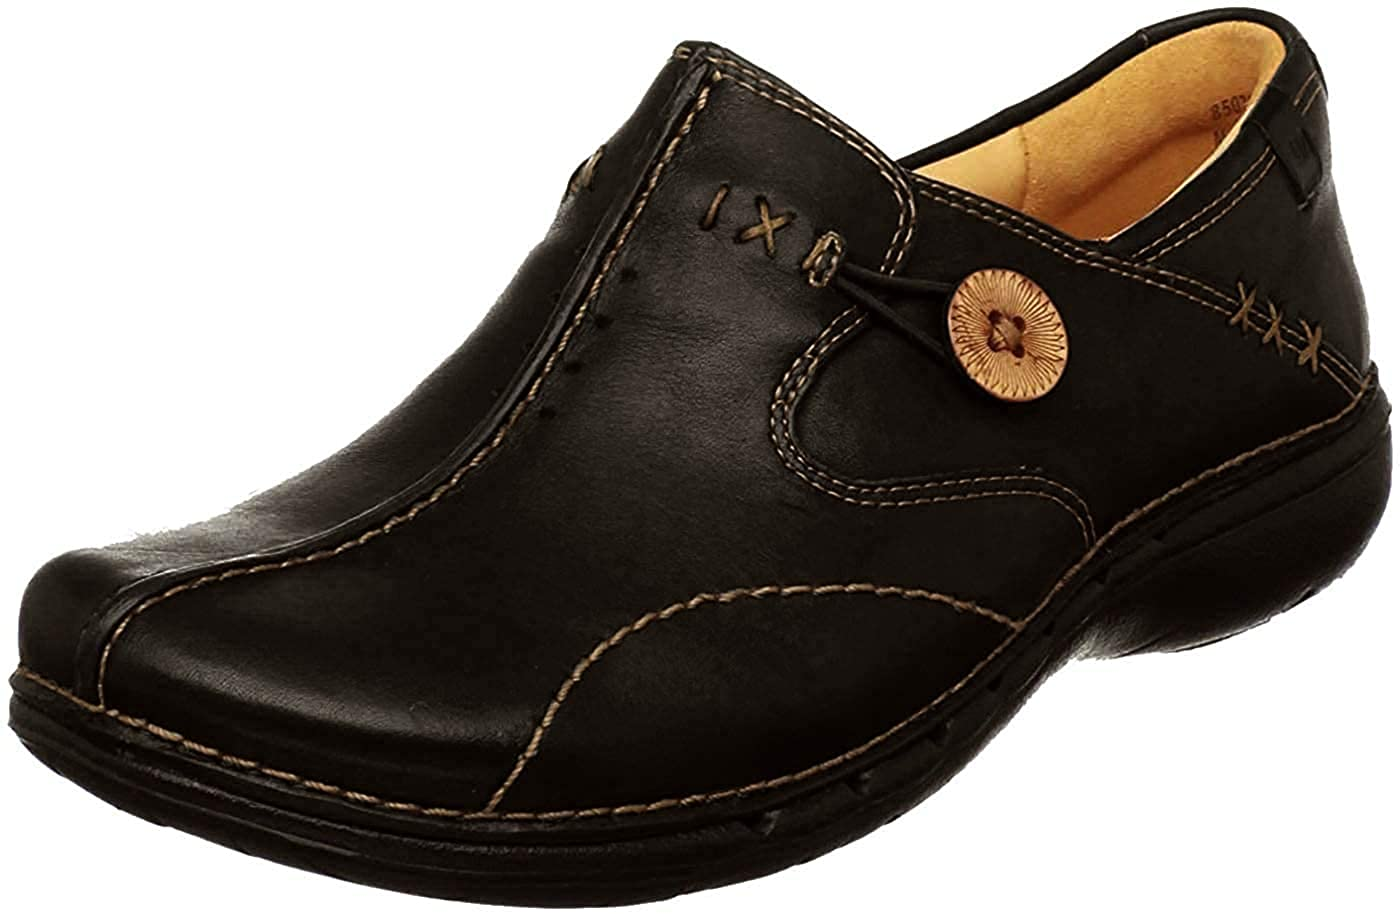 Clarks Unstructured Women's Slip-On Shoe Sale Free shipping / New price Un.Loop